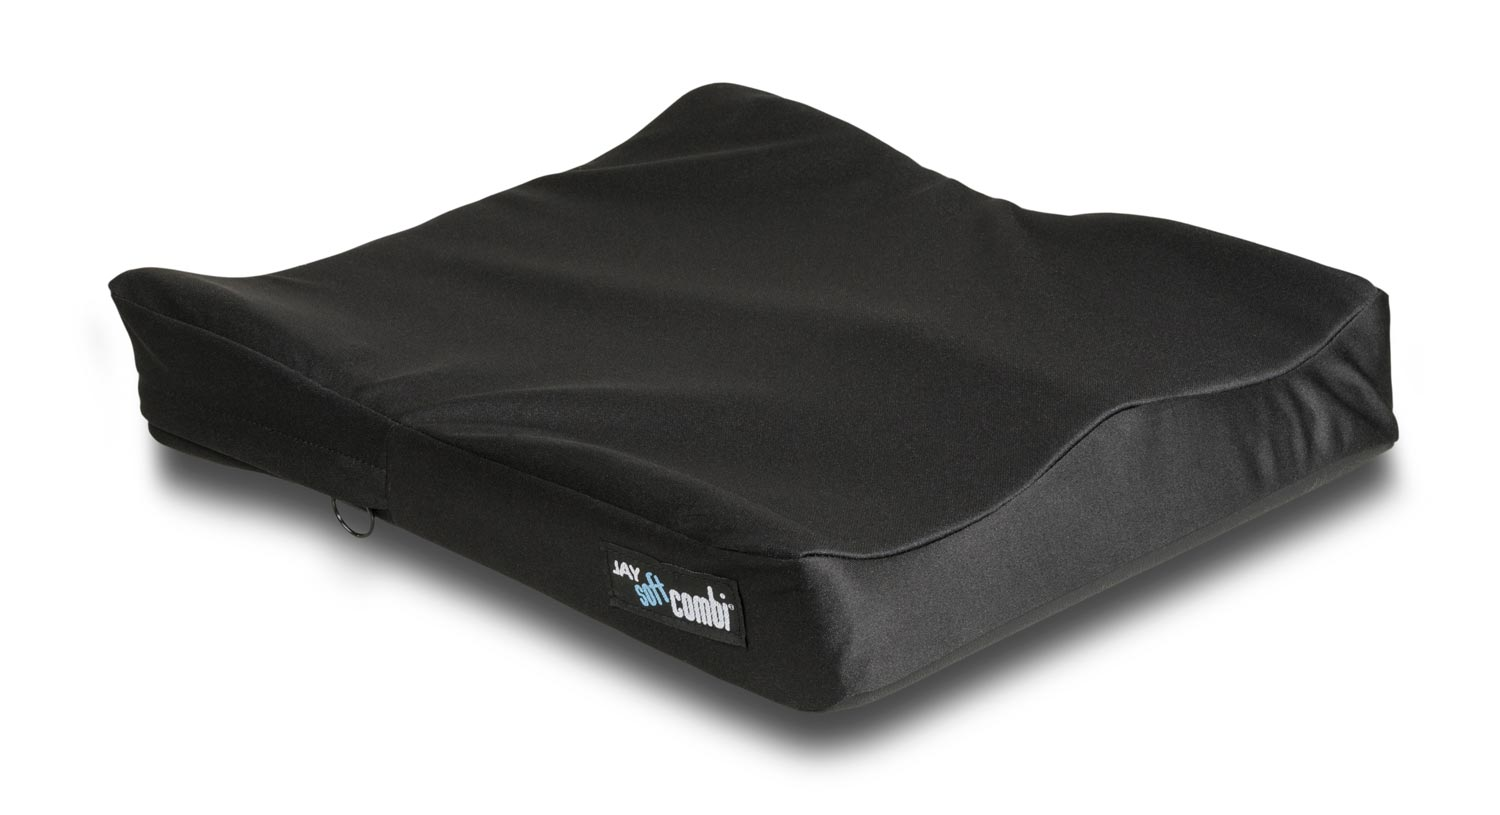 Moisture-Resistant Cover with No-Slip Bottom